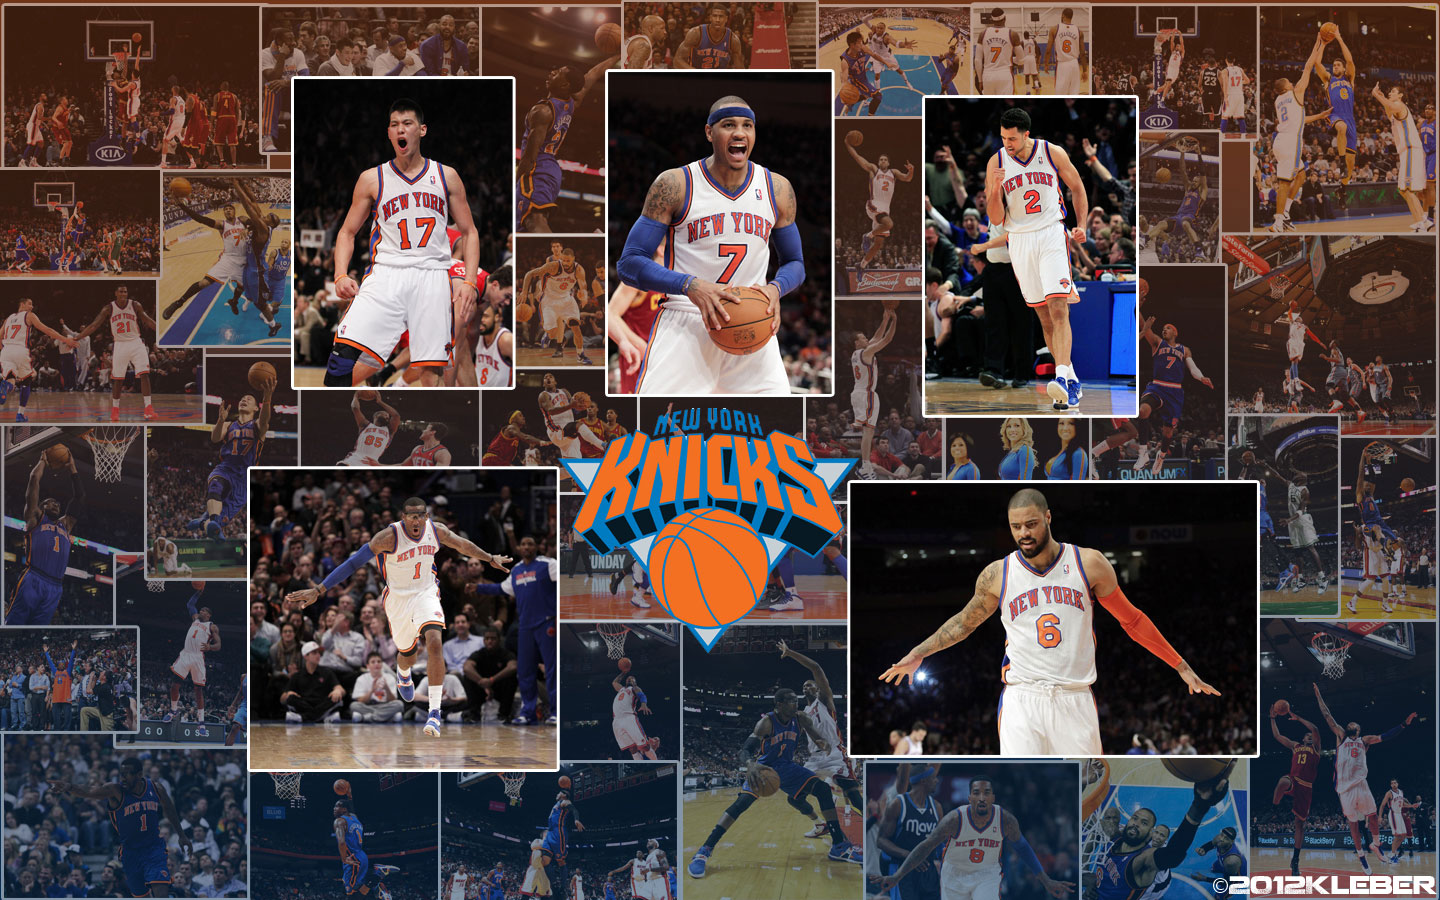 wallpapers today first is new york knicks widescreen wallpaper made